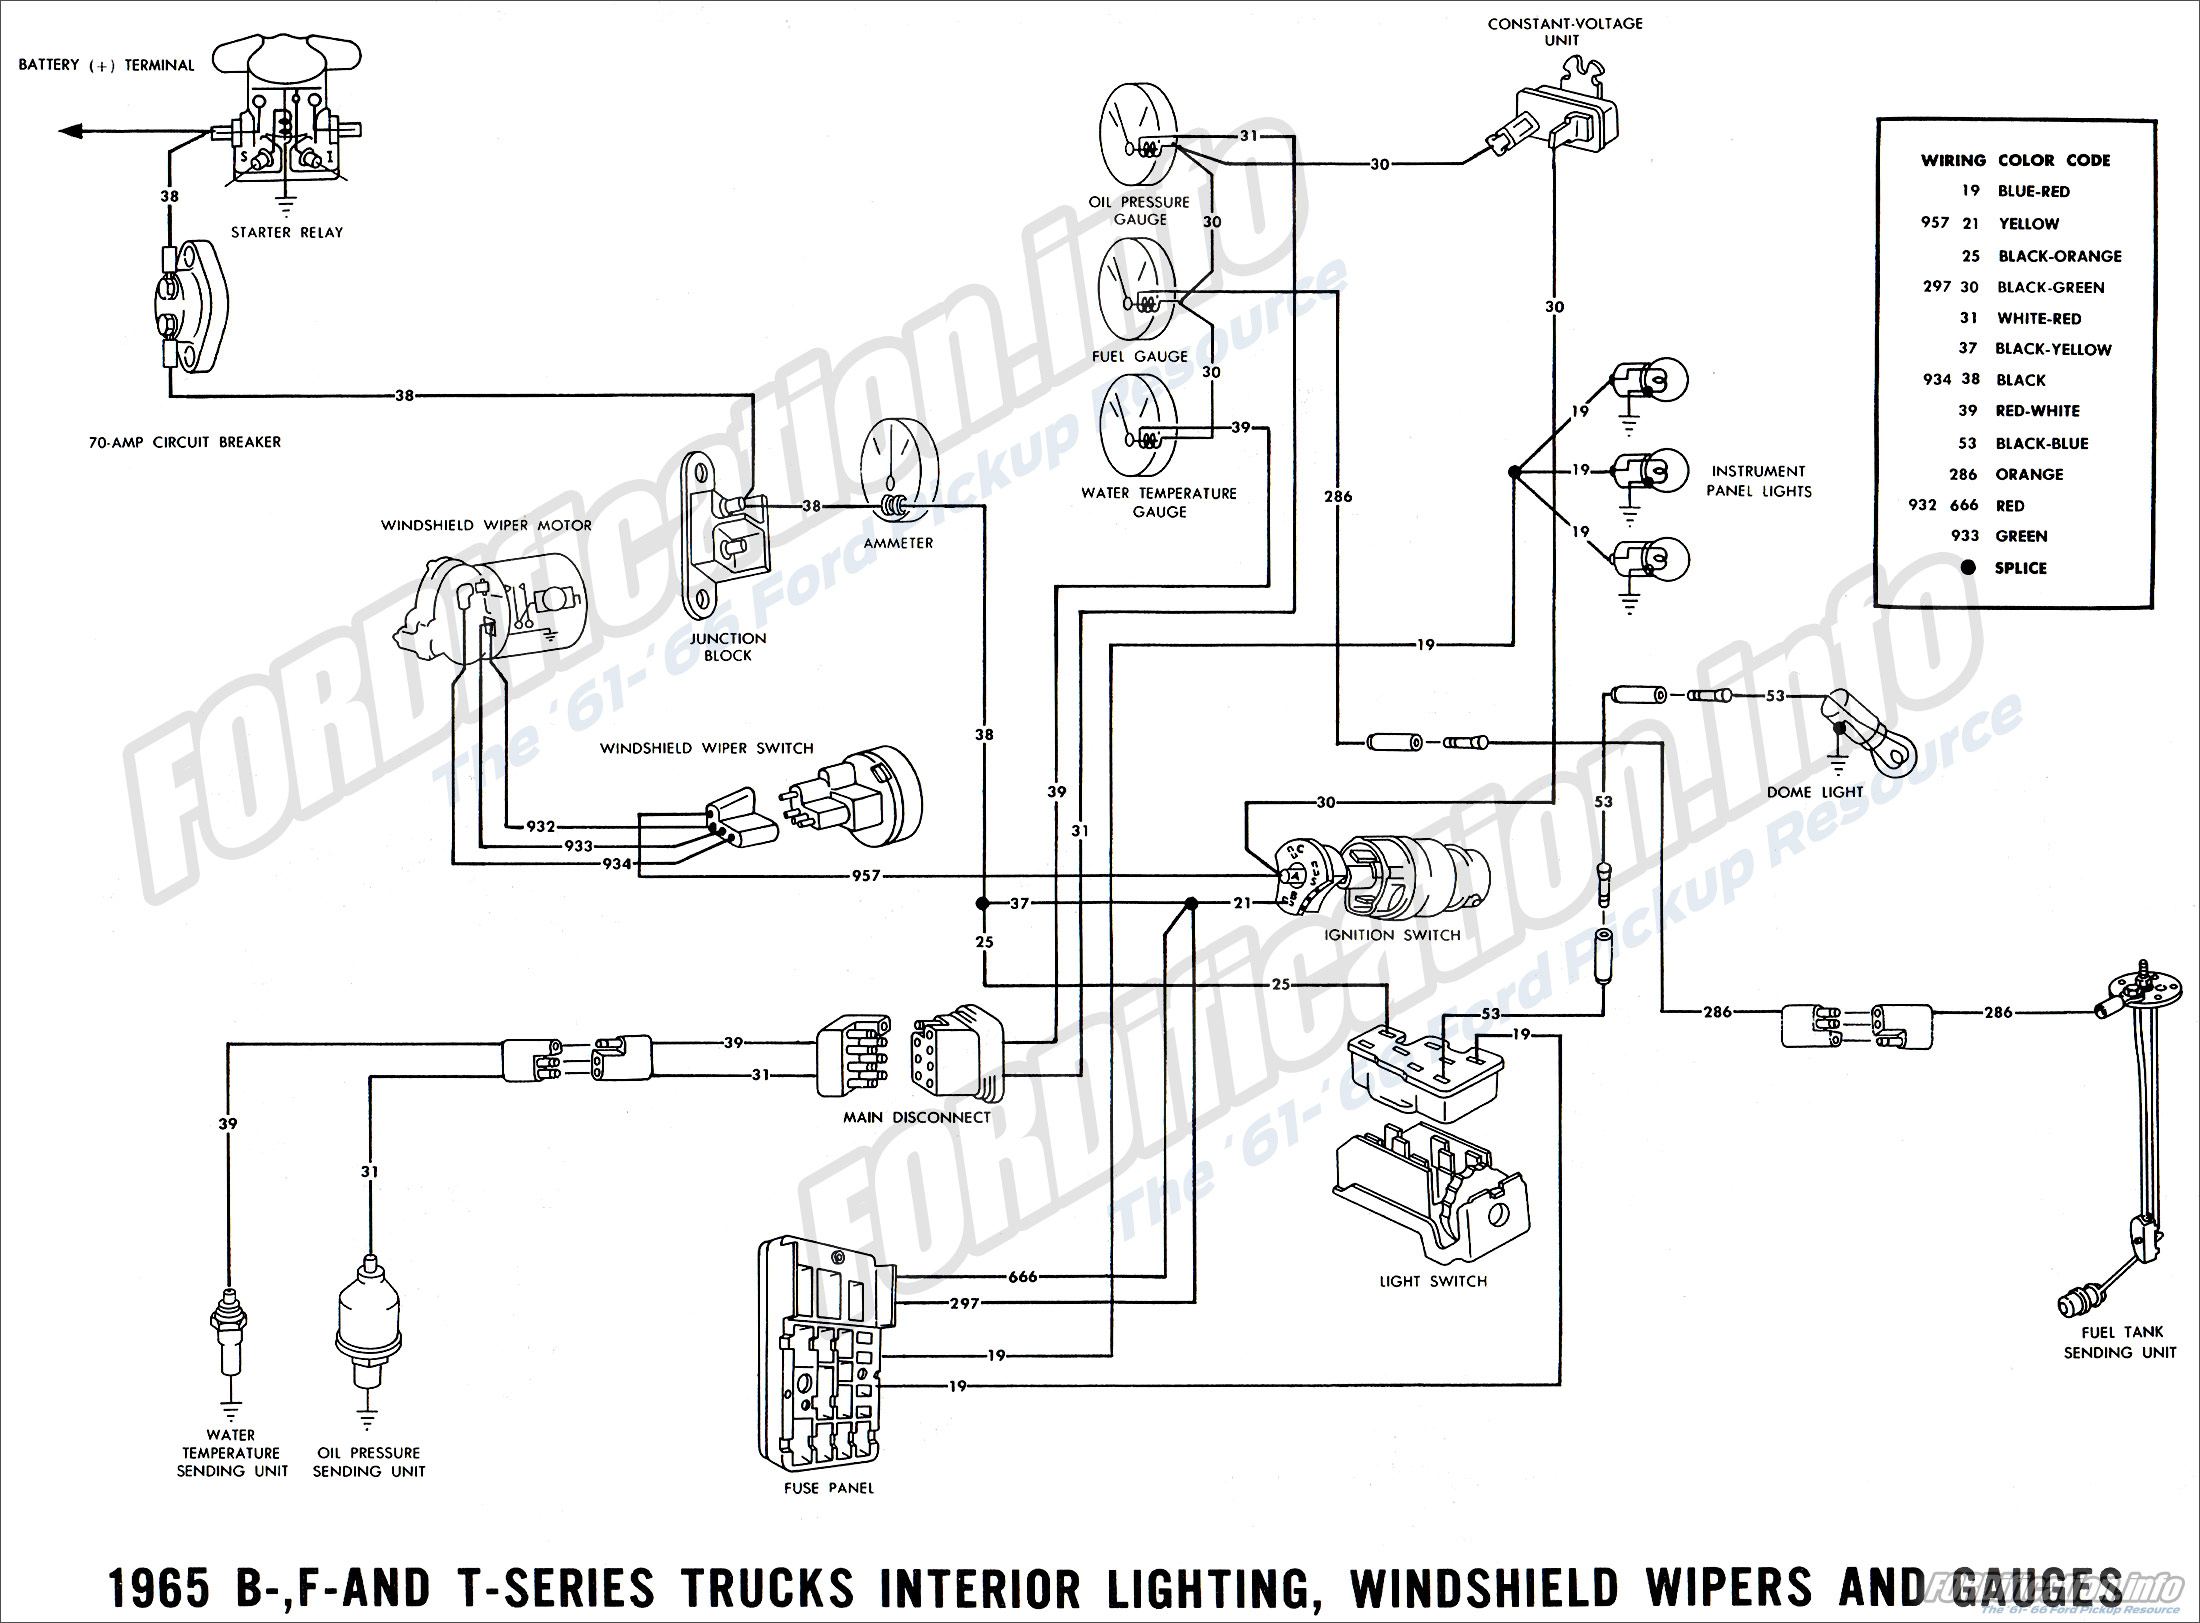 1965 ford f250 wiring diagram - wiring diagrams site seat-light -  seat-light.geasparquet.it  geas parquet